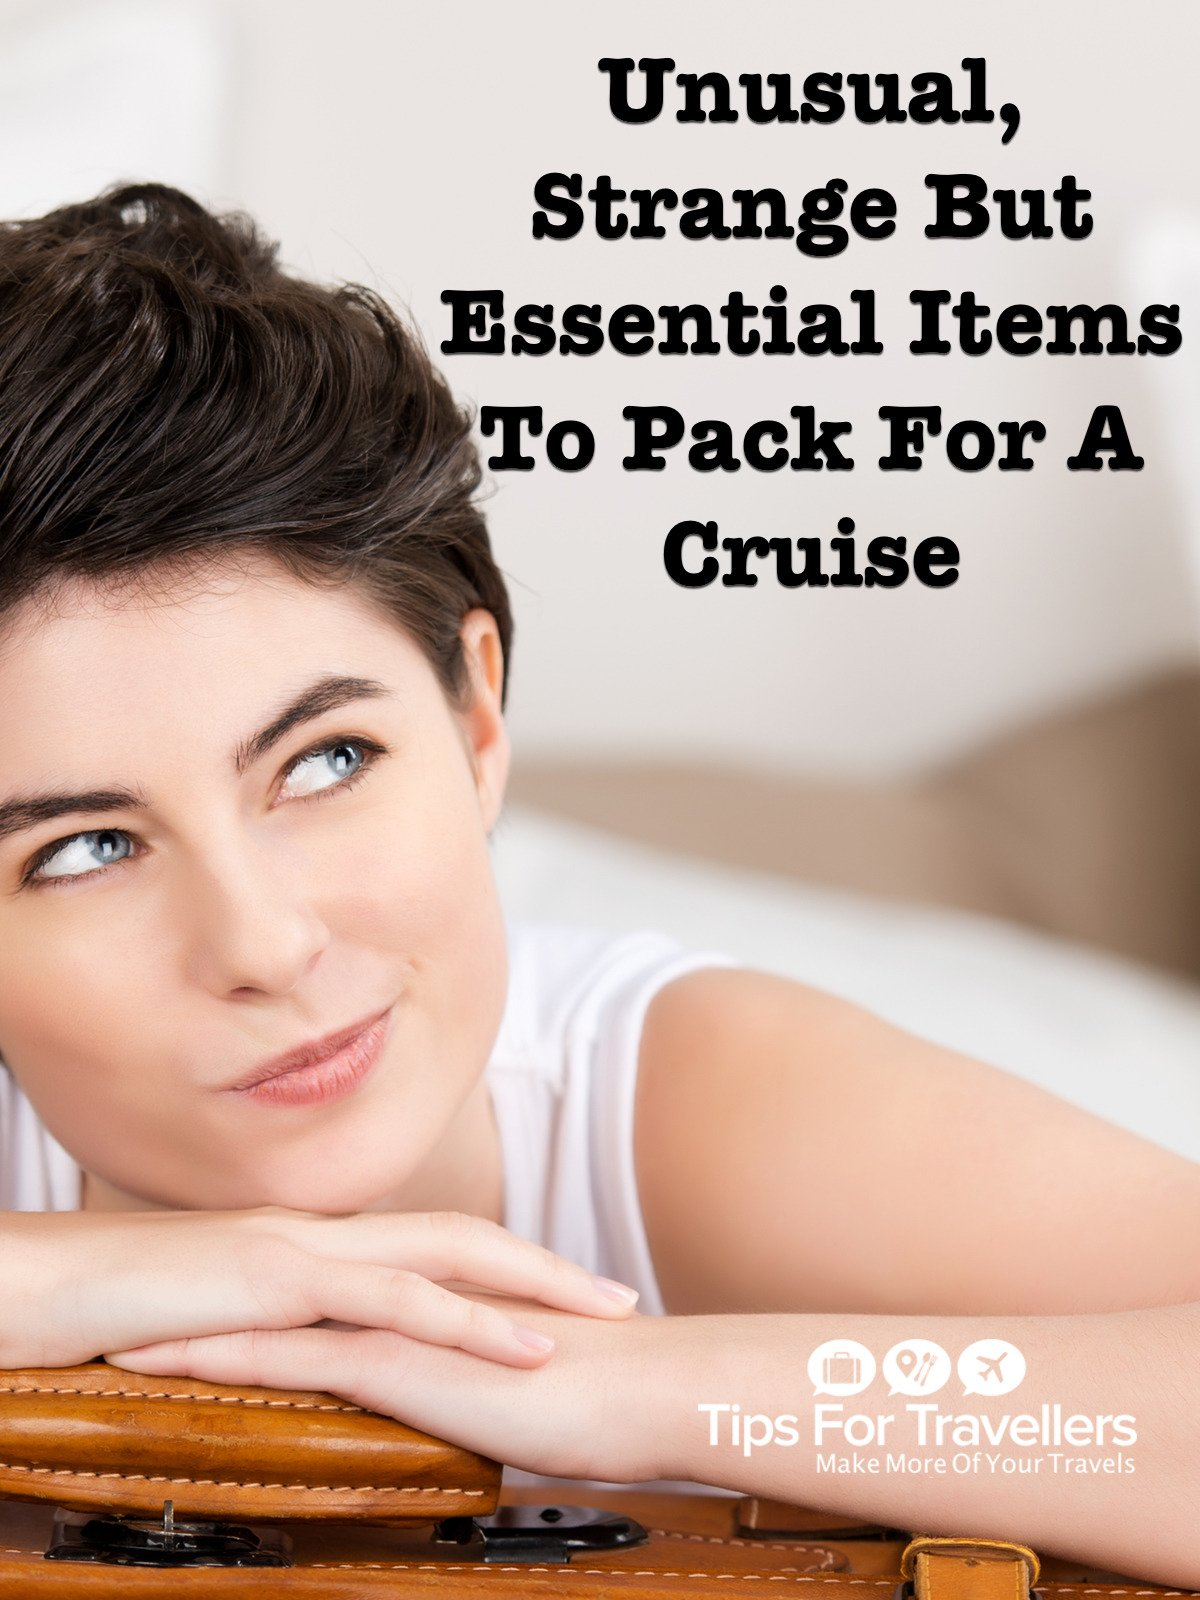 Clip: Unusual, Strange But Essential Items To Pack For A Cruise